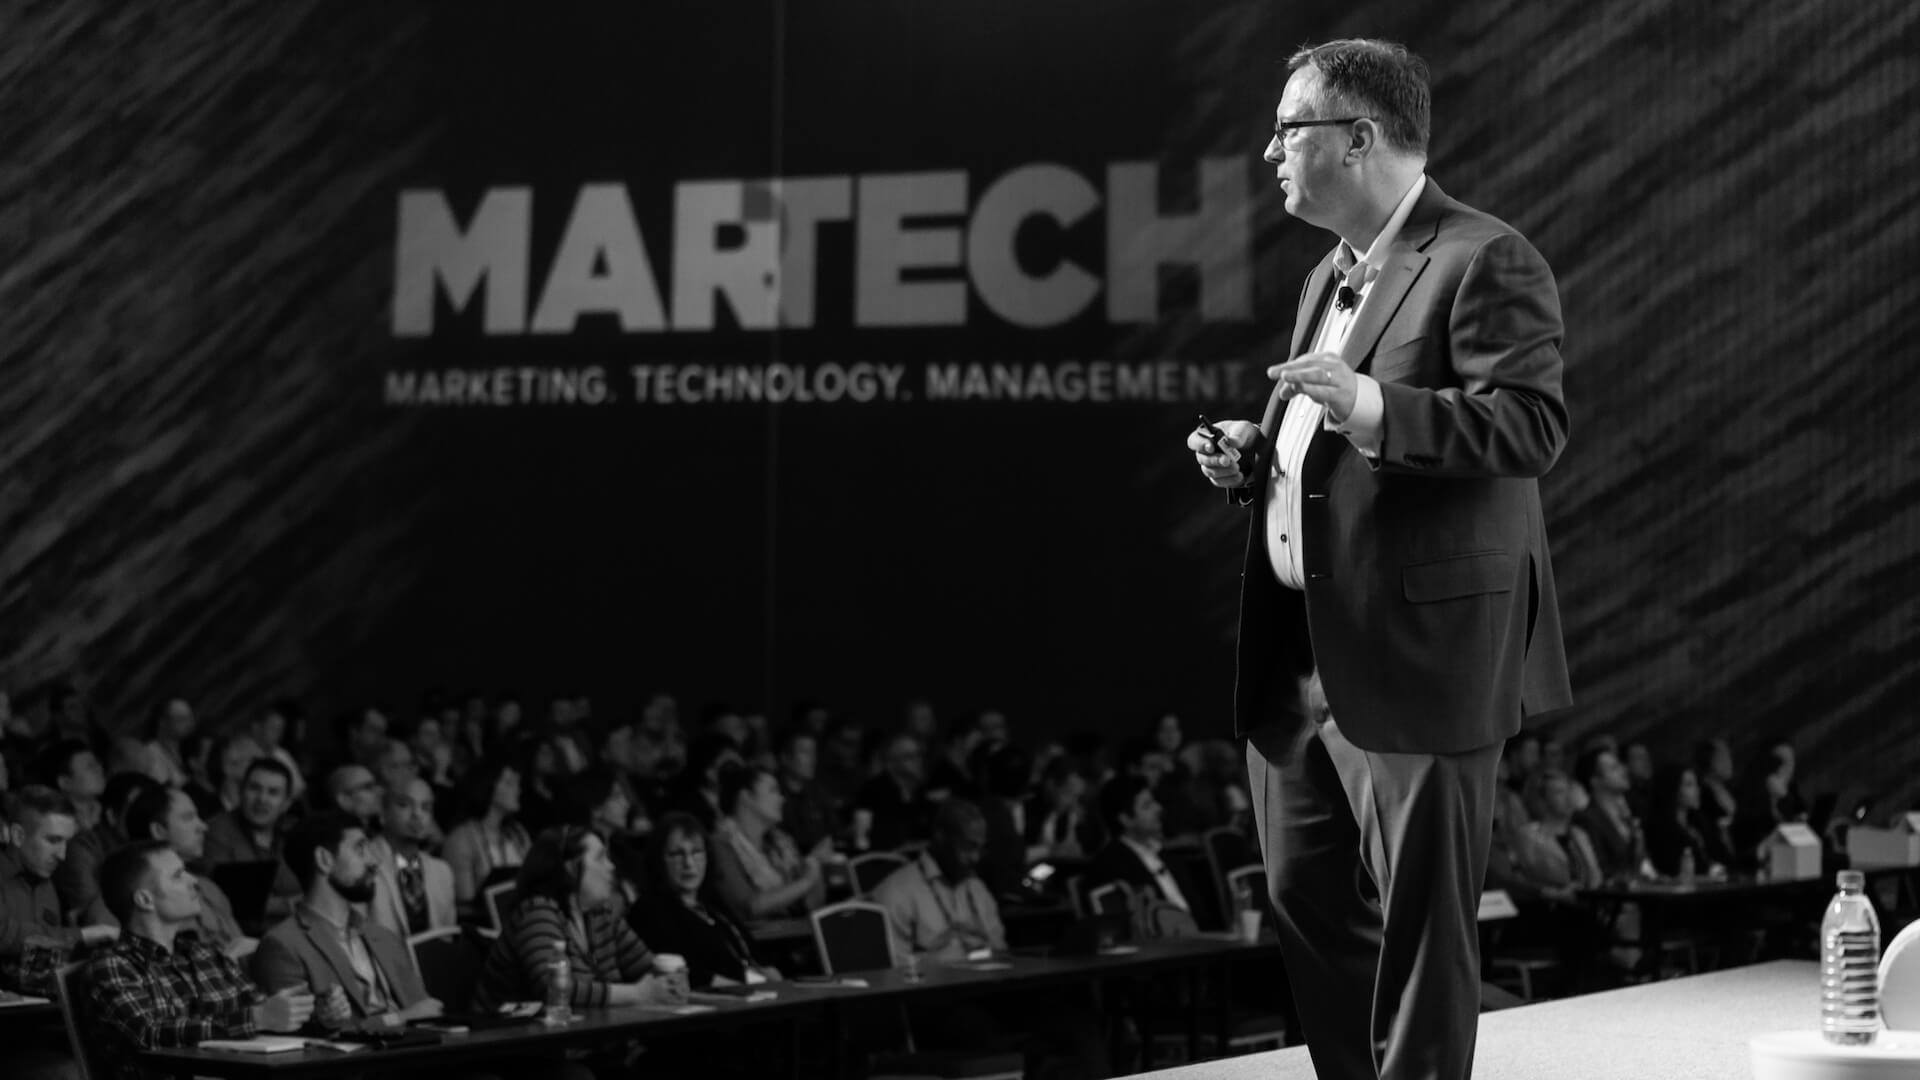 Attend MarTech for free… see what you get!